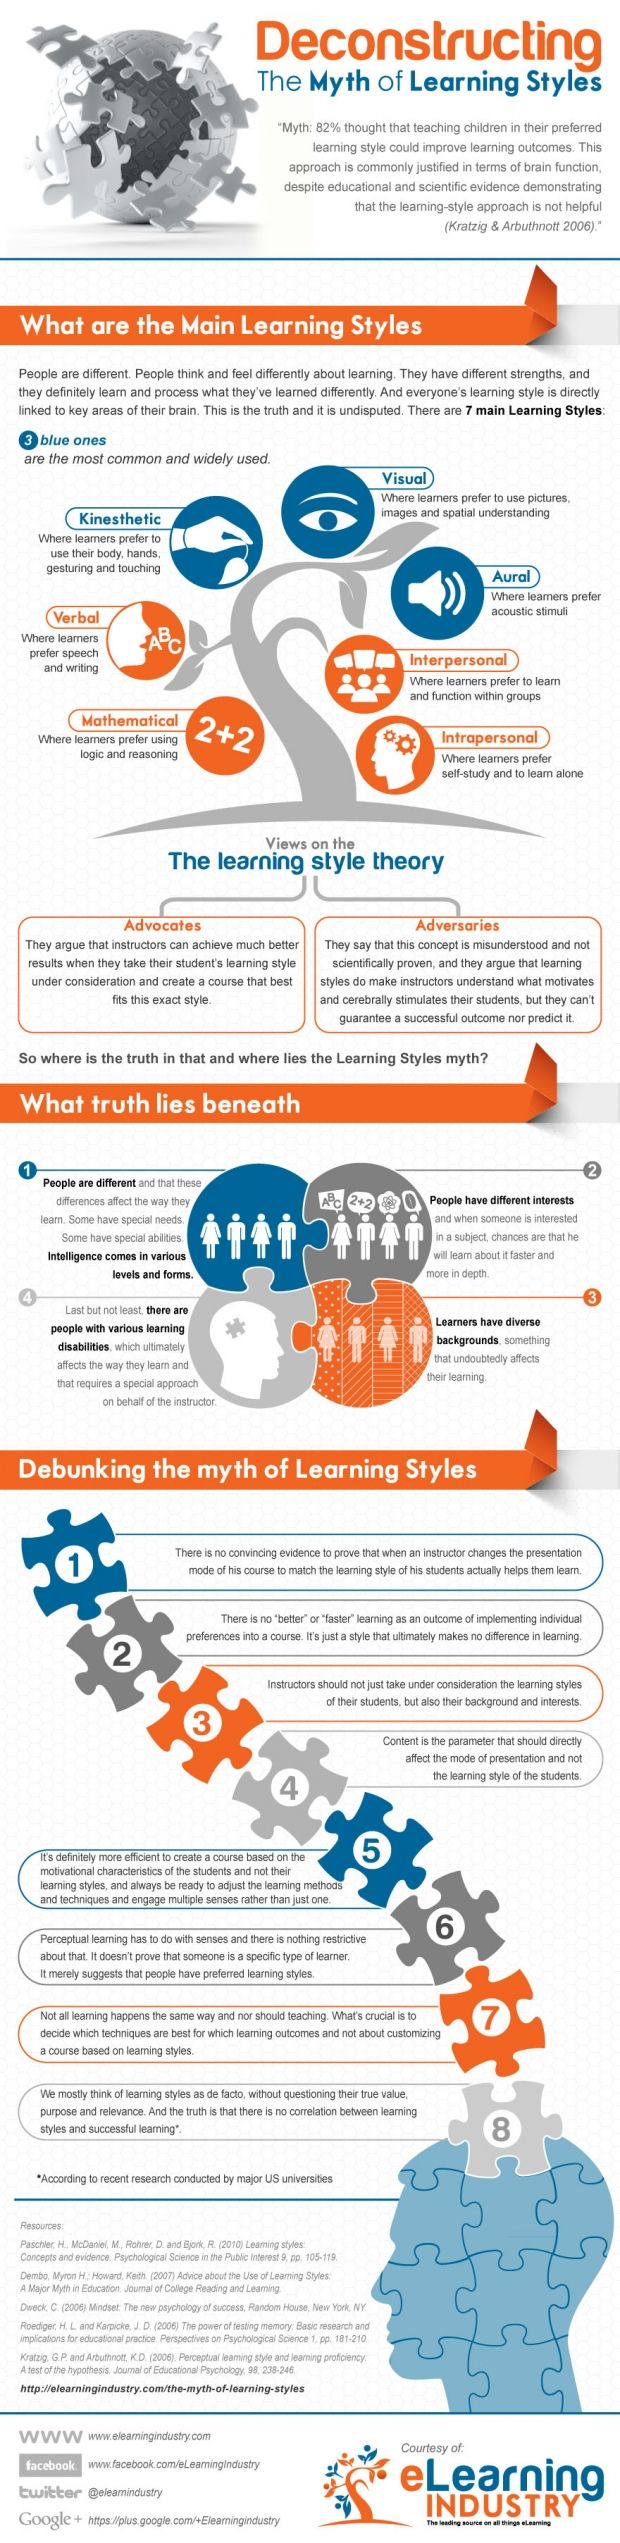 The Myth of Learning Styles Infographic